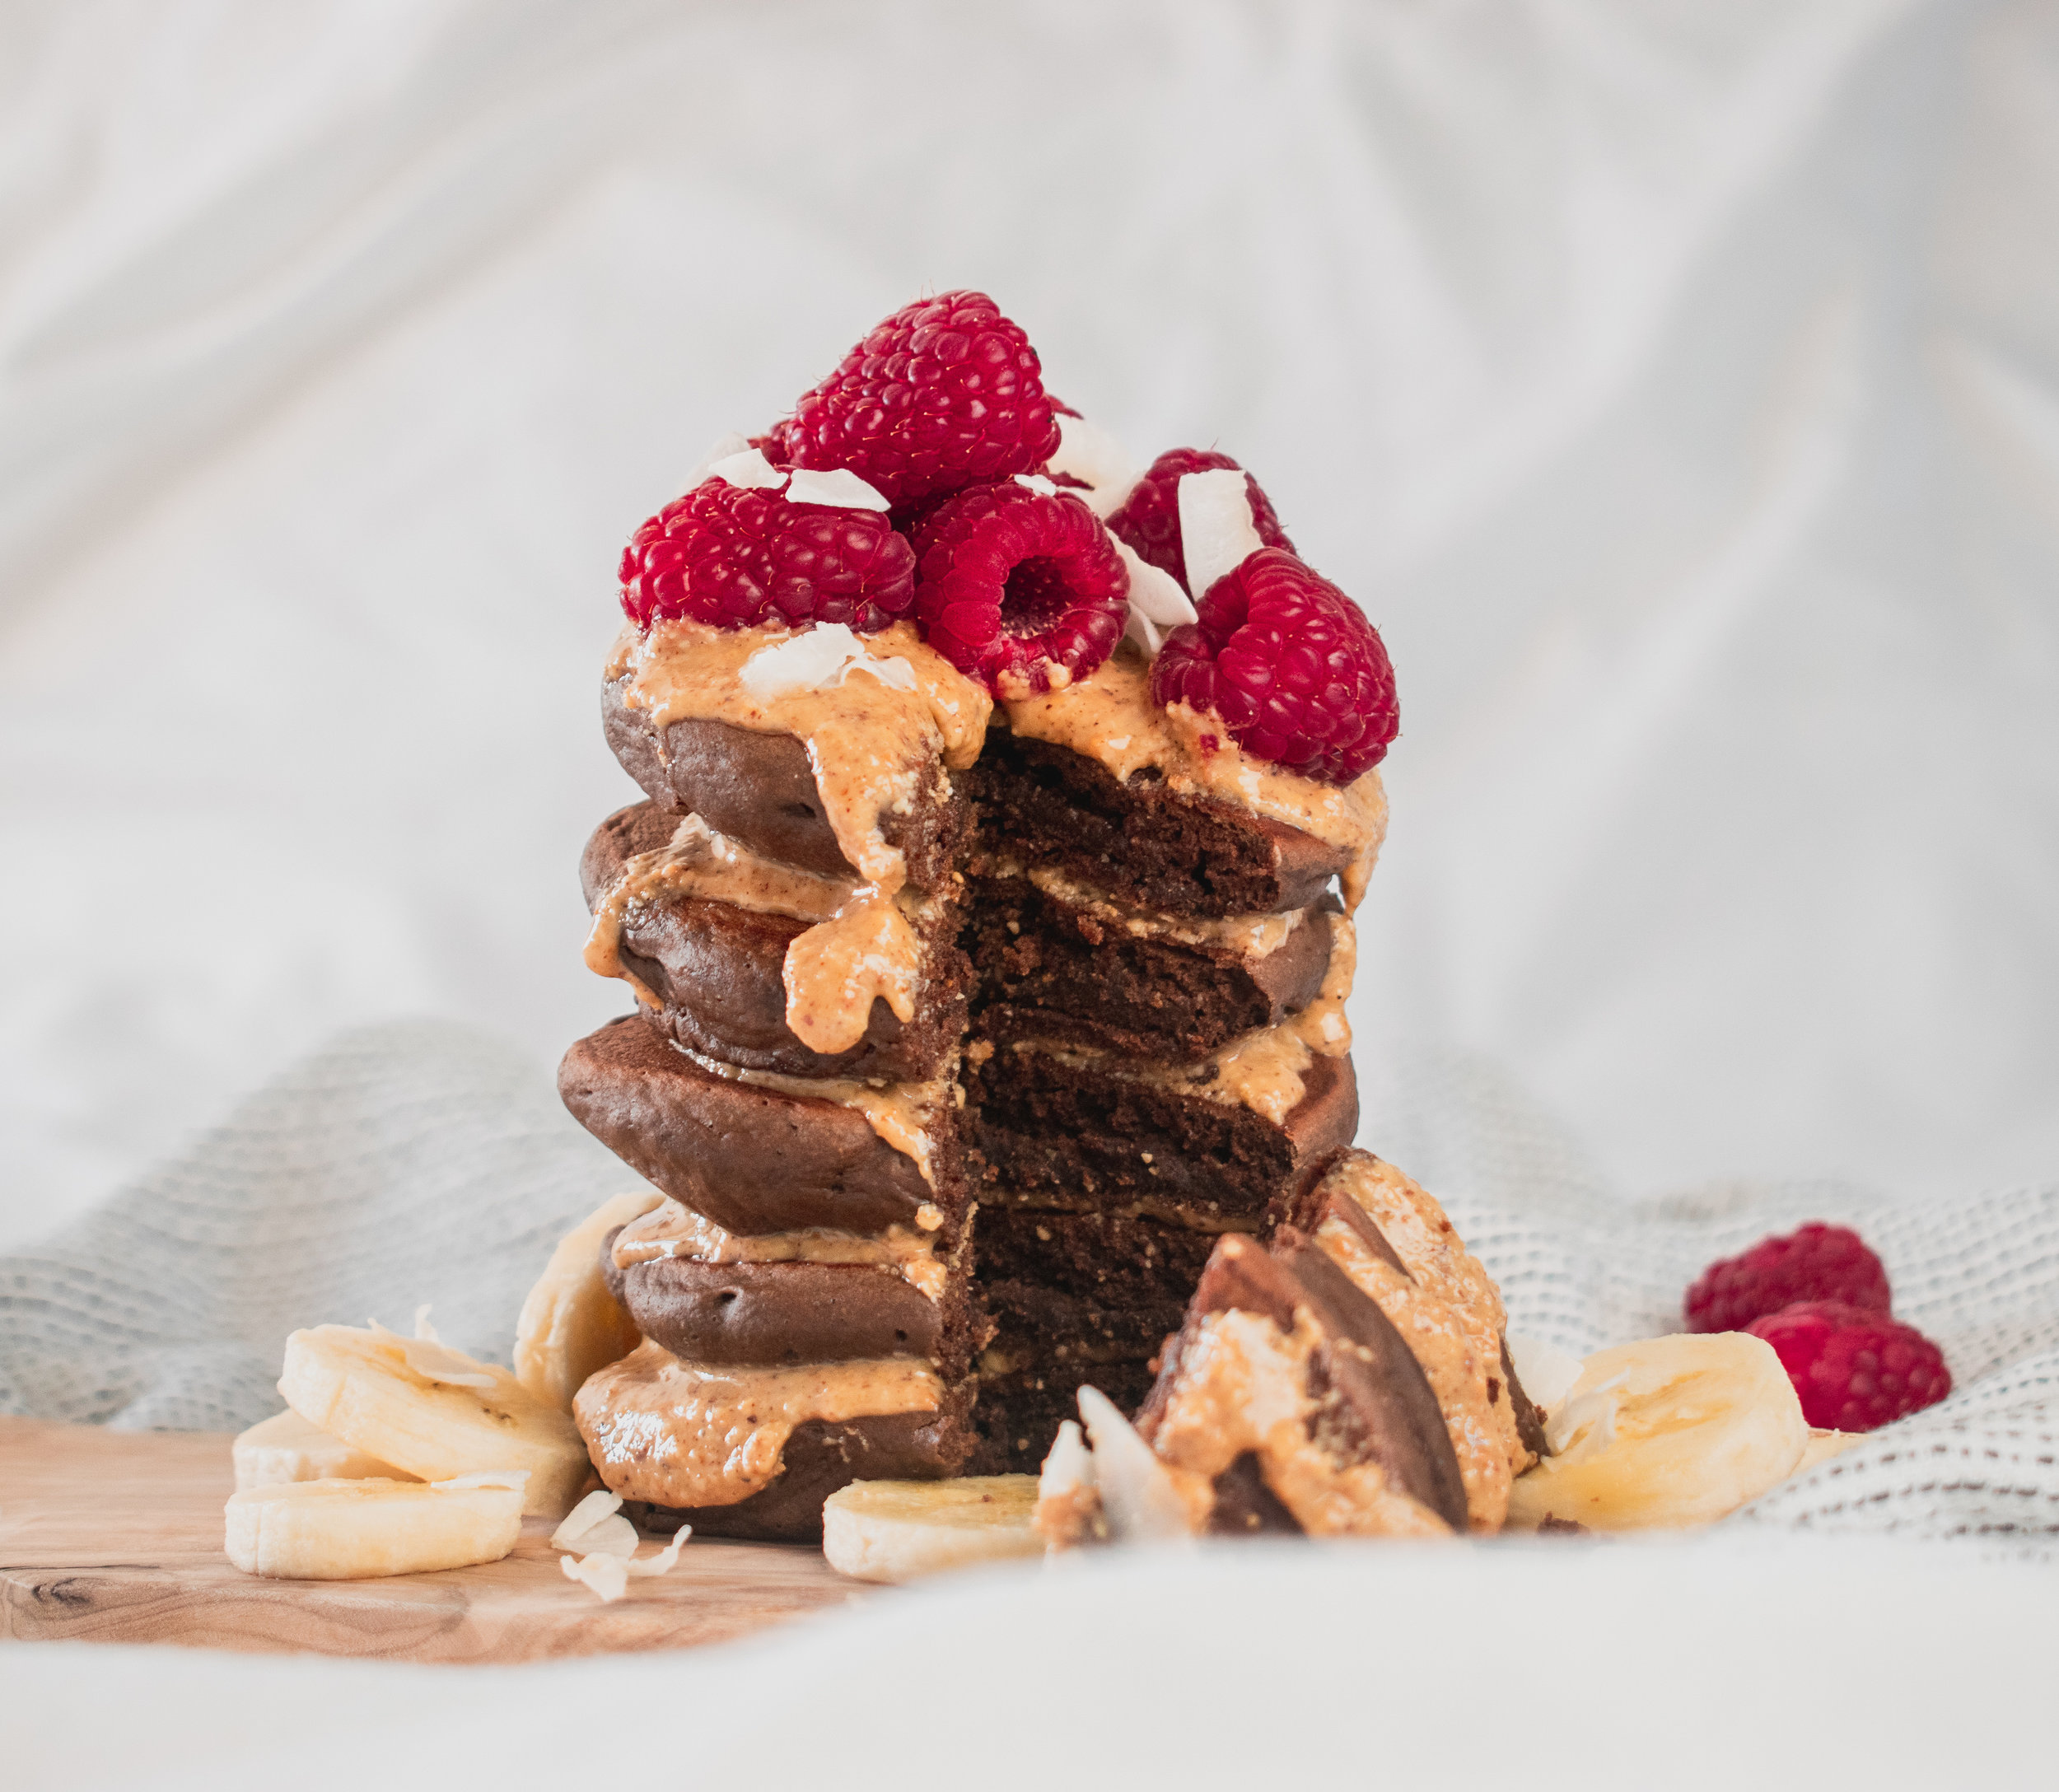 Fluffy Vegan Chocolate and Raspberry Pancake Stack - Ally The Earthling